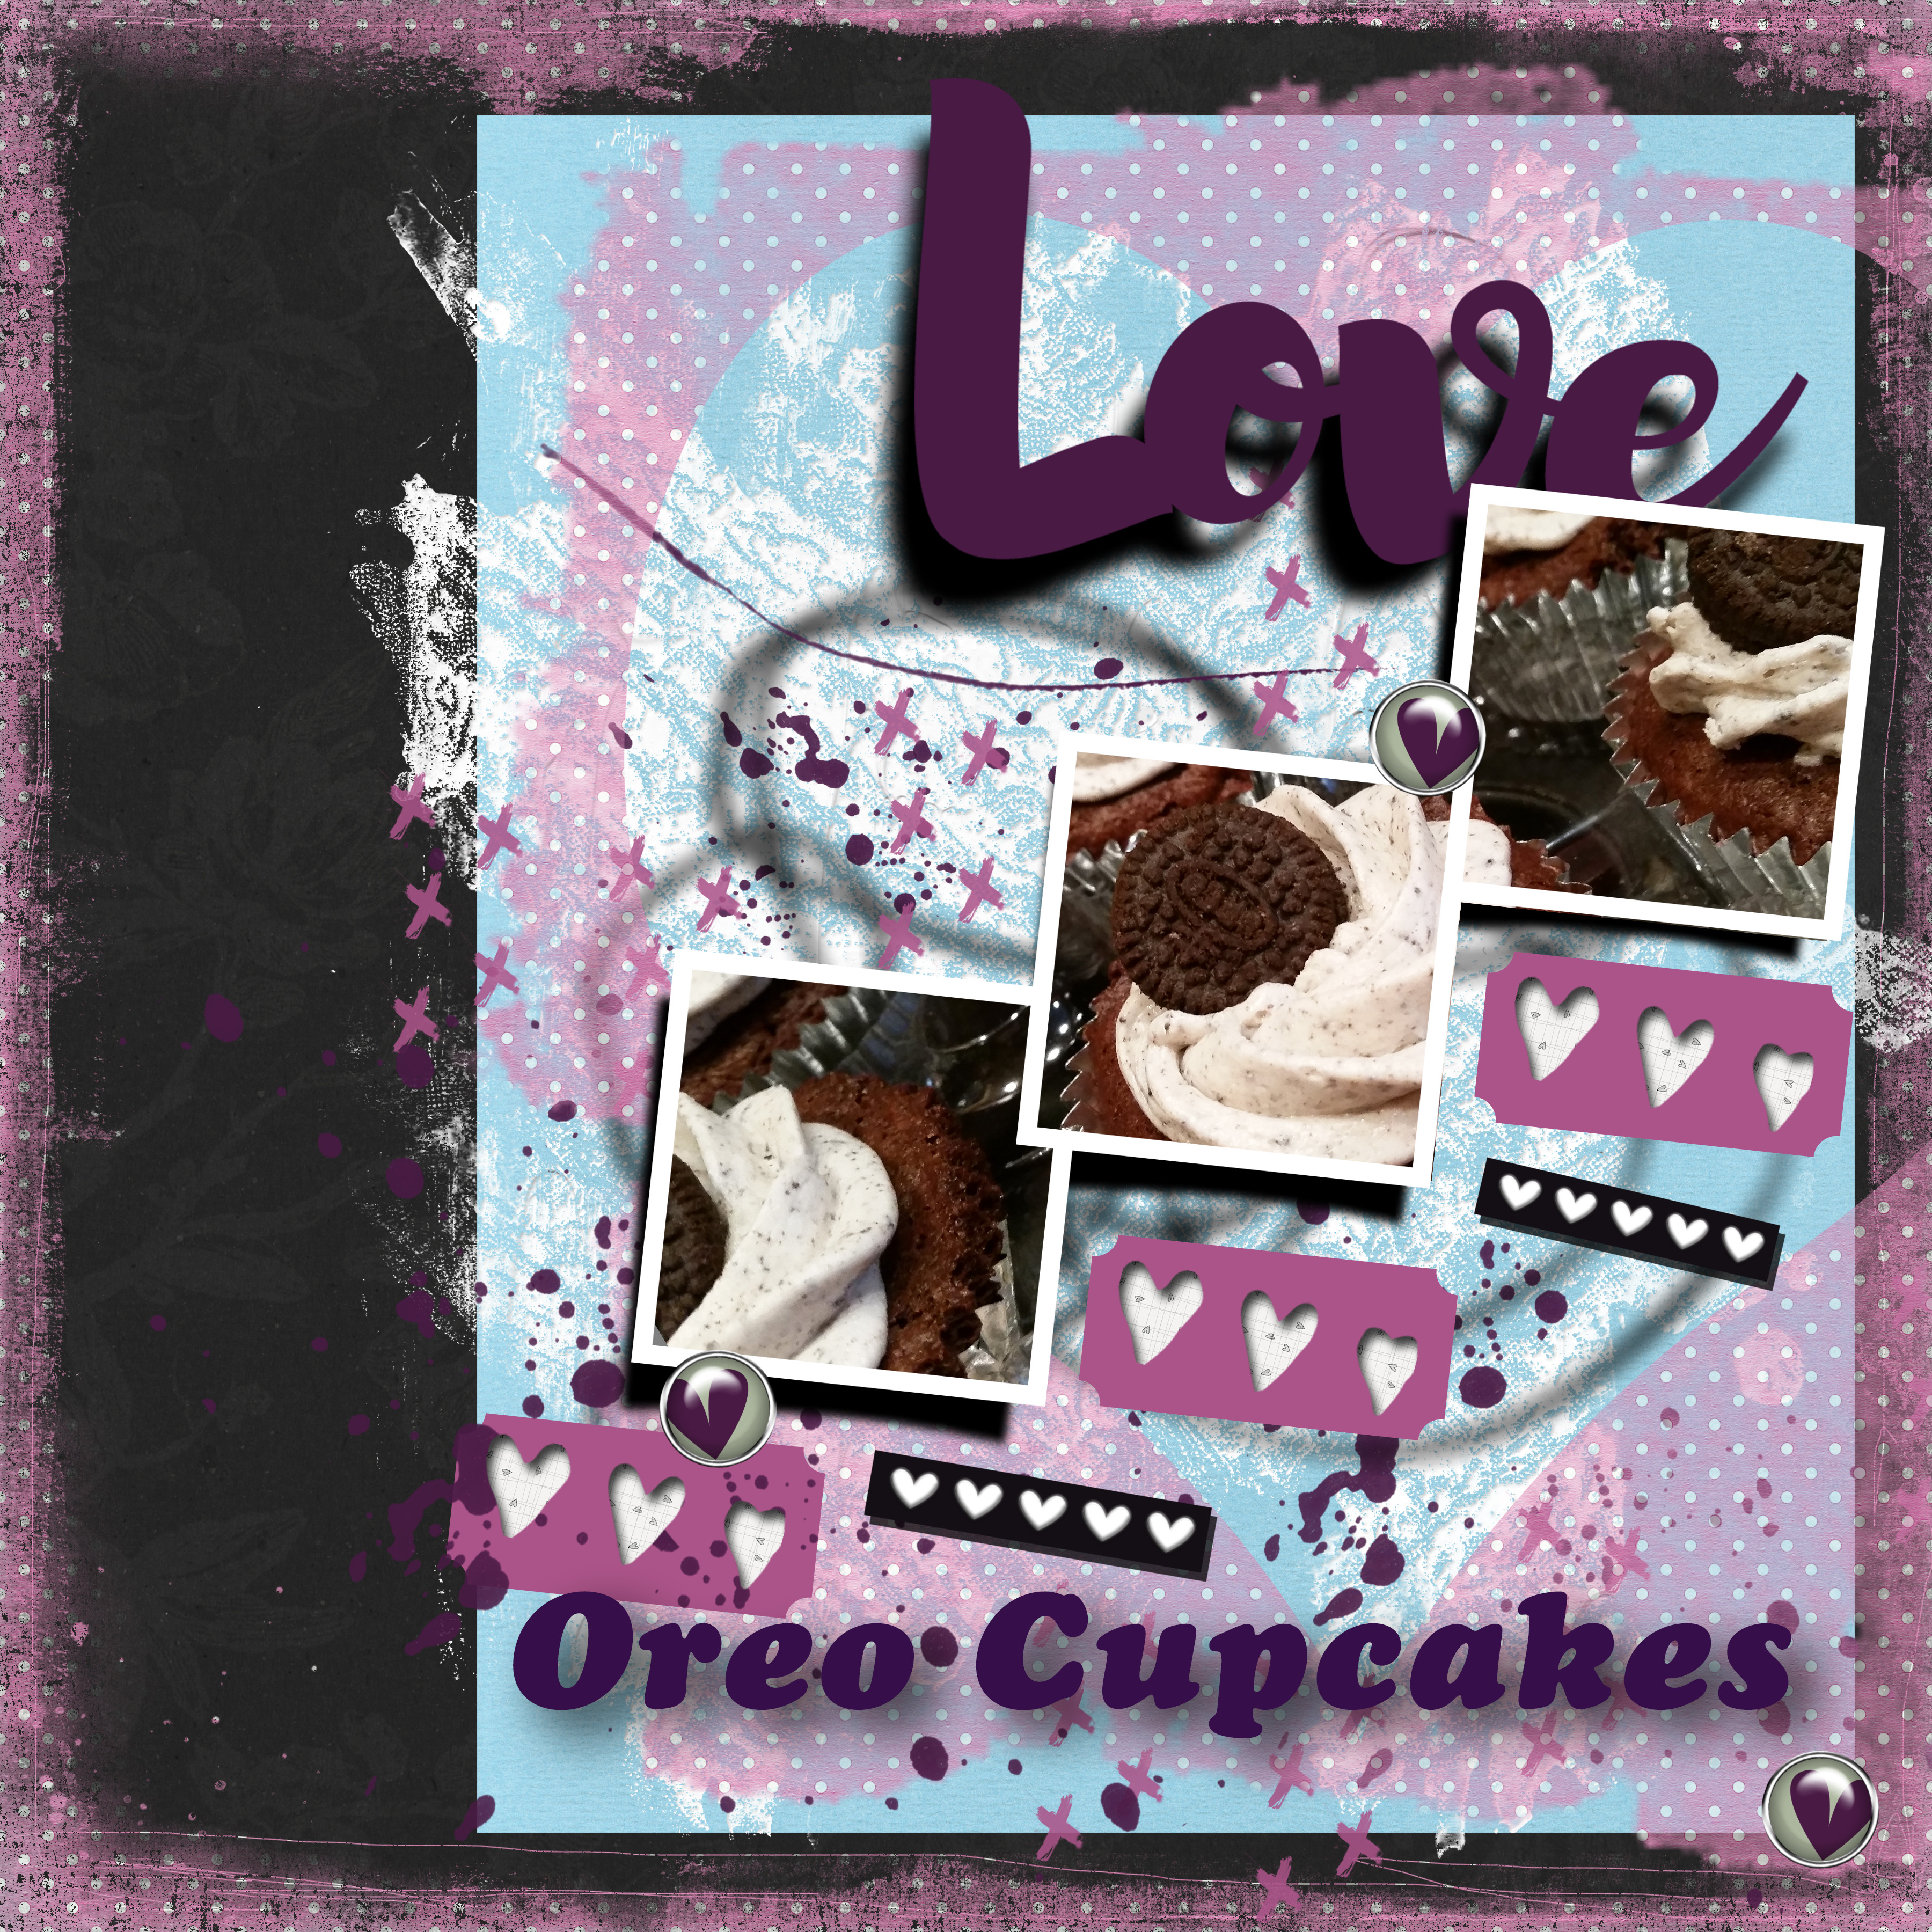 Pink Reptile Designs February Template Challenge love Oreo Cupcakes.jpg